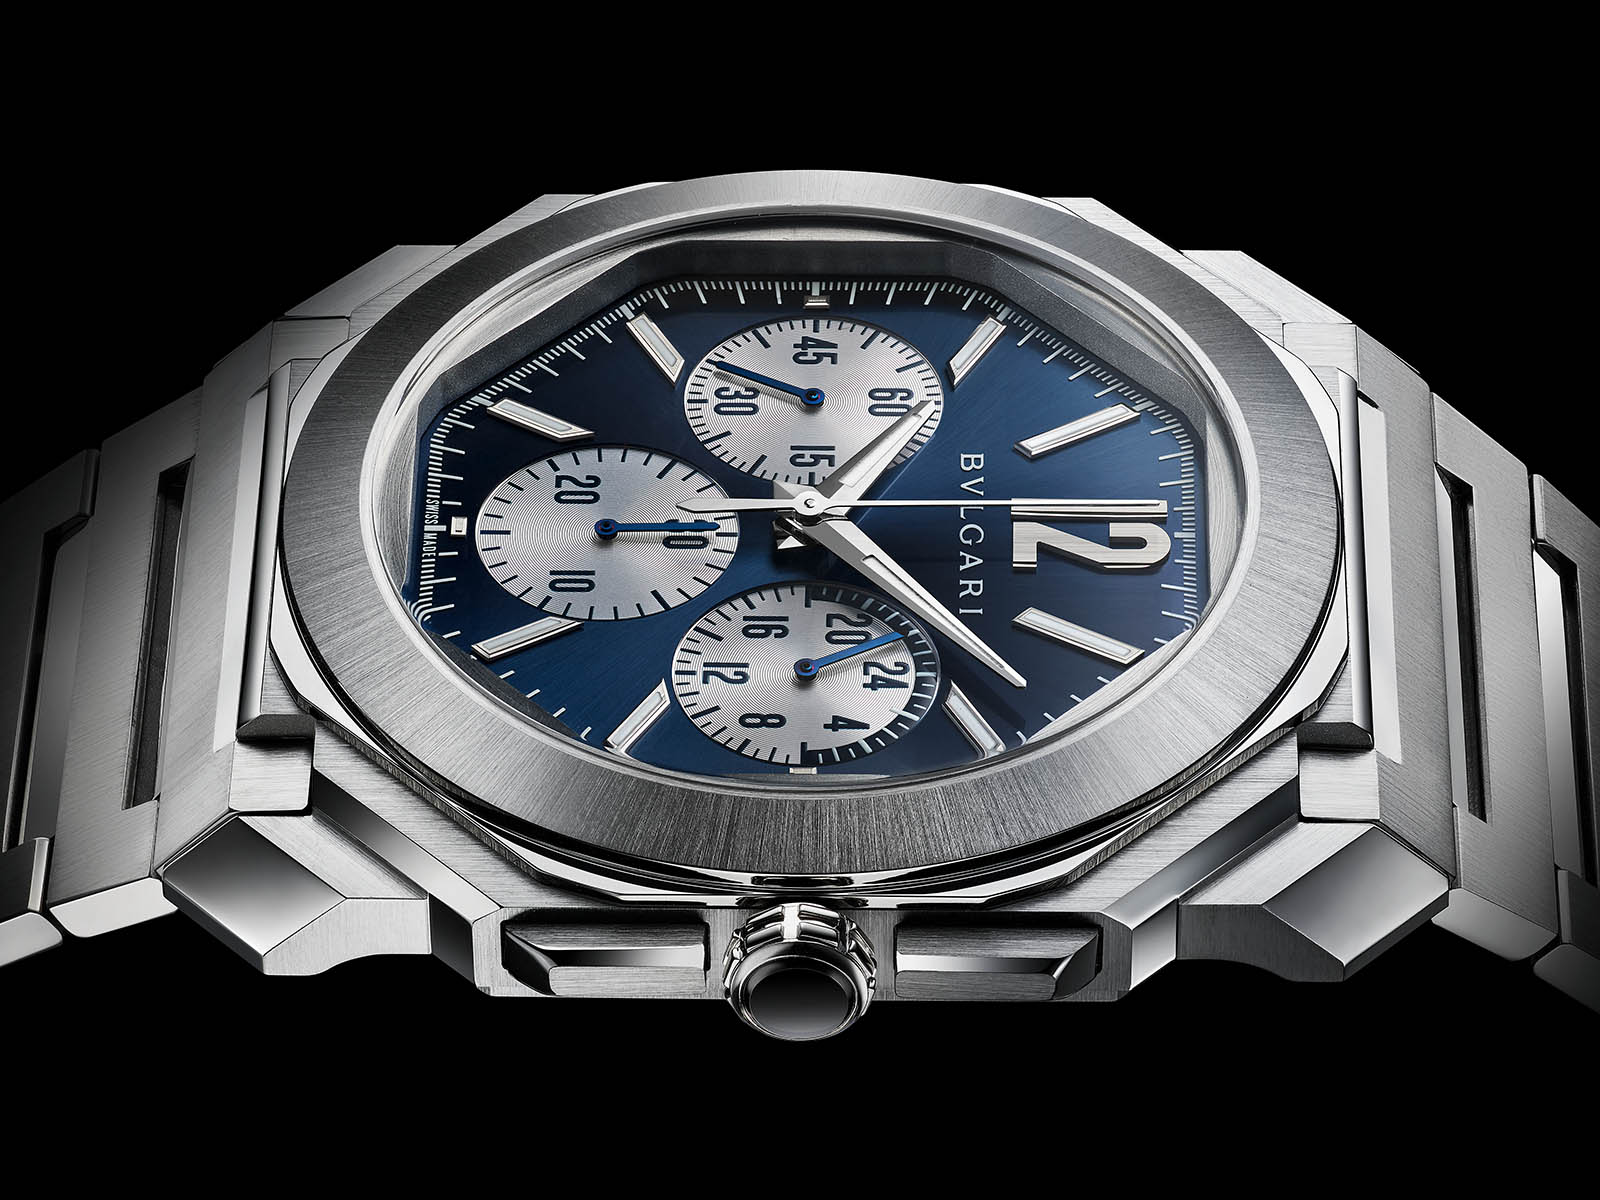 bulgari-octo-finissimo-s-chronograph-gmt-lvmh-2021-novelties-2.jpg